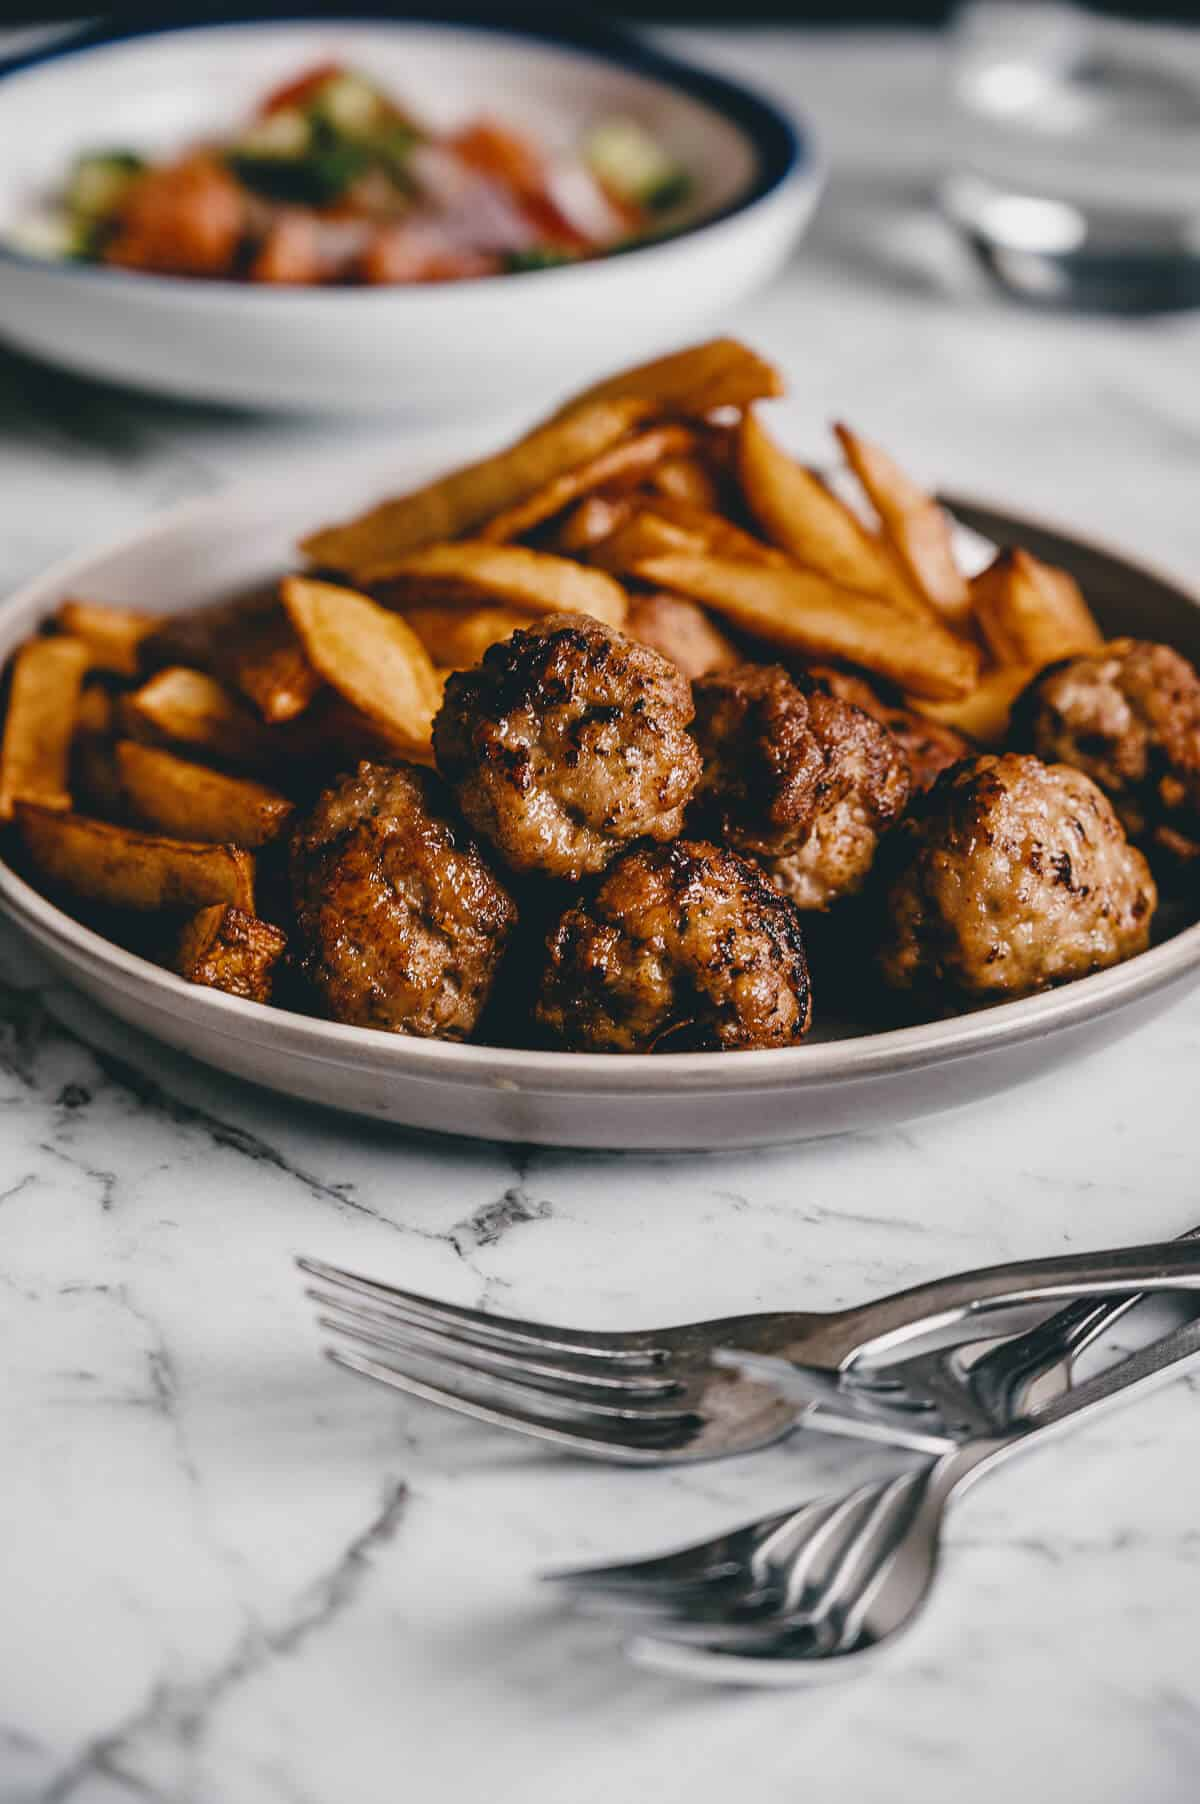 close up of fried meatballs with french fries in the background